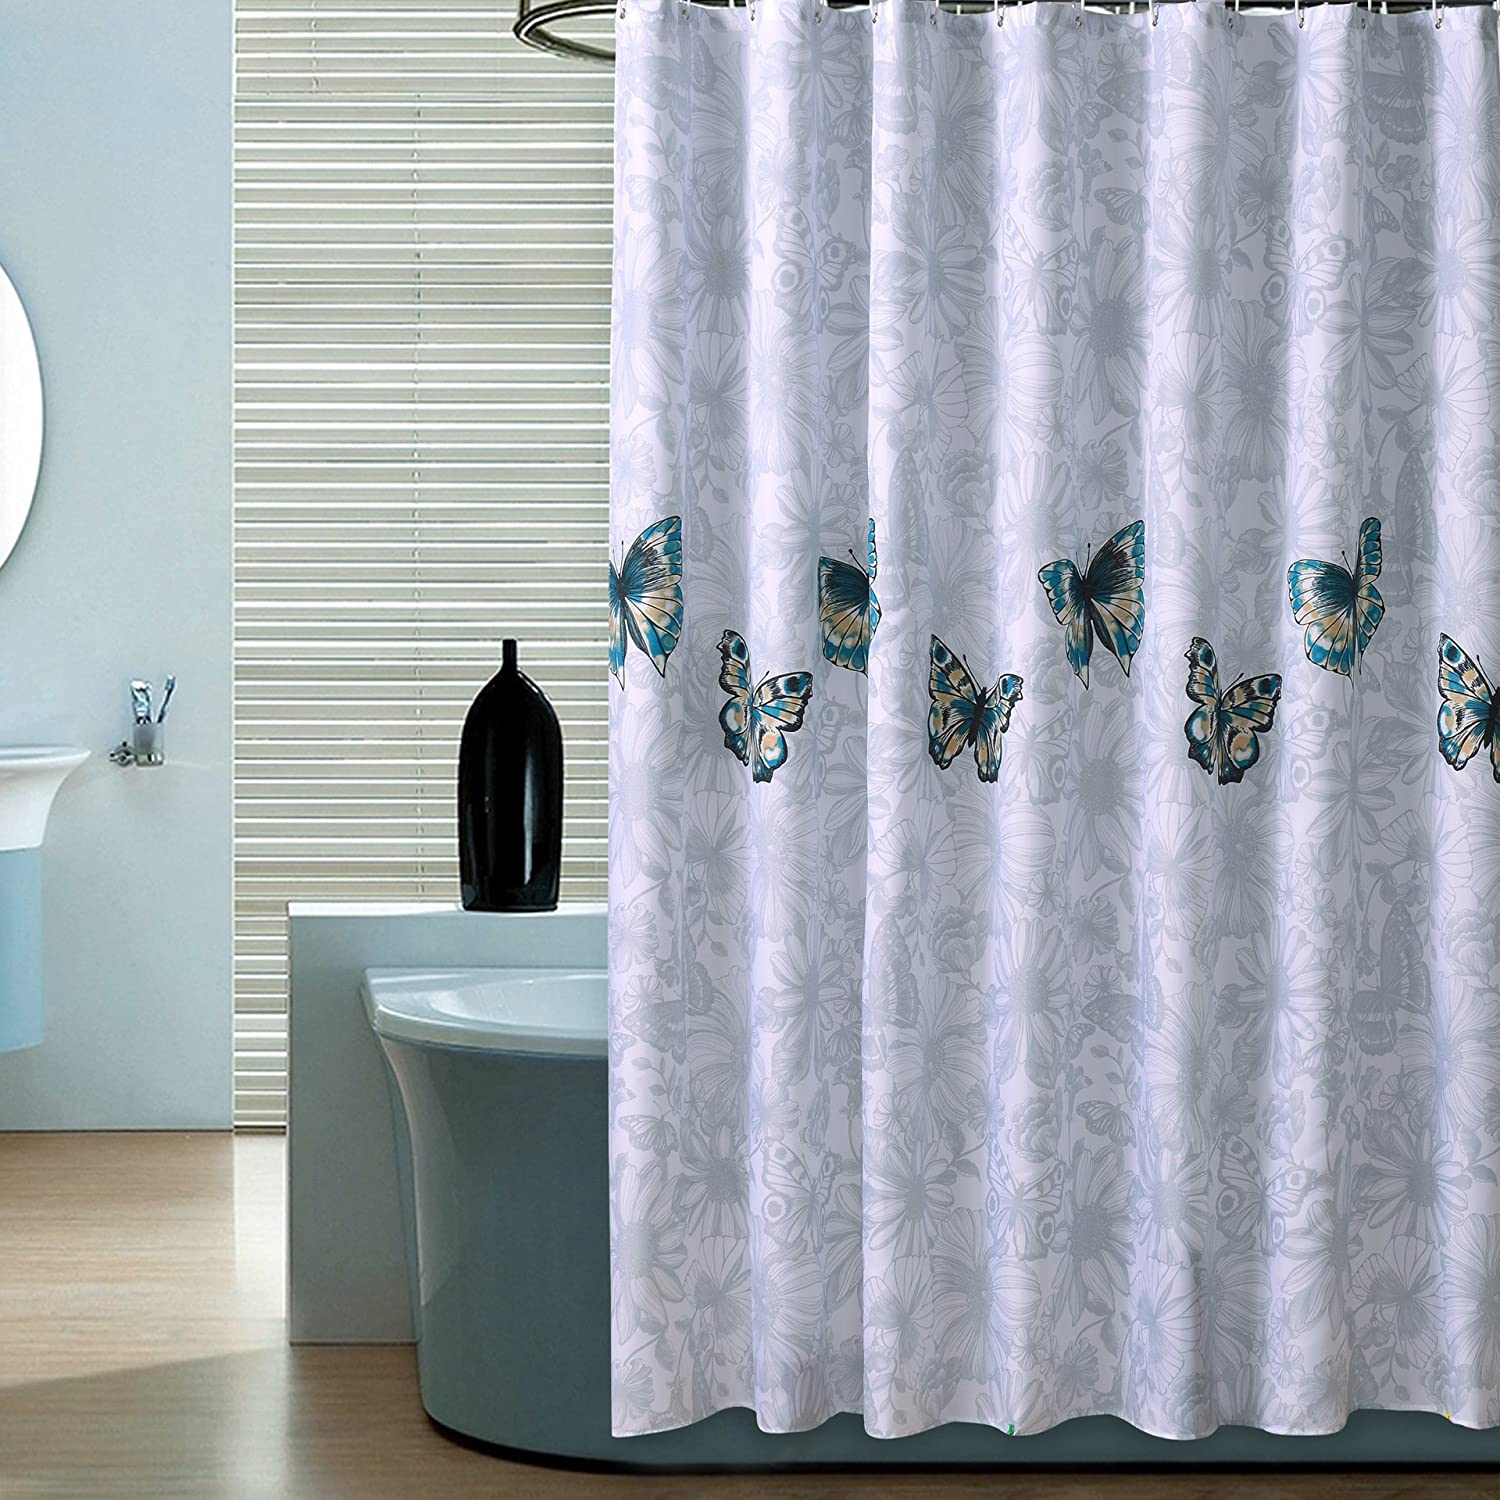 Mokiki White Polyester Fabric Shower Curtain with Butterflies Wa